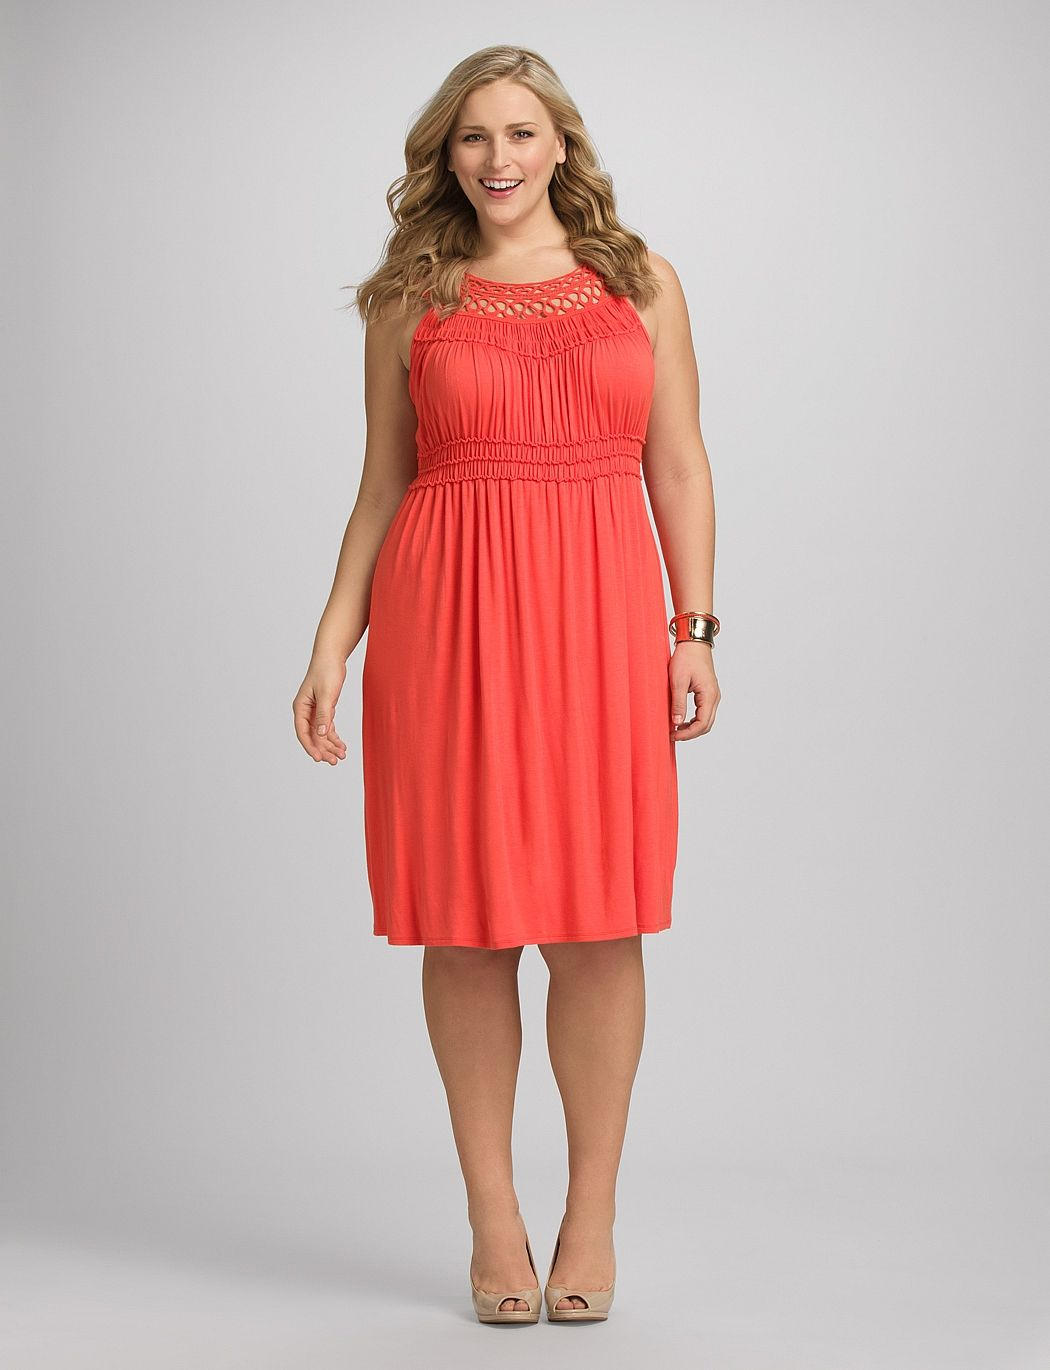 Plus Size Dresses Empire Waist Ruched C Dress